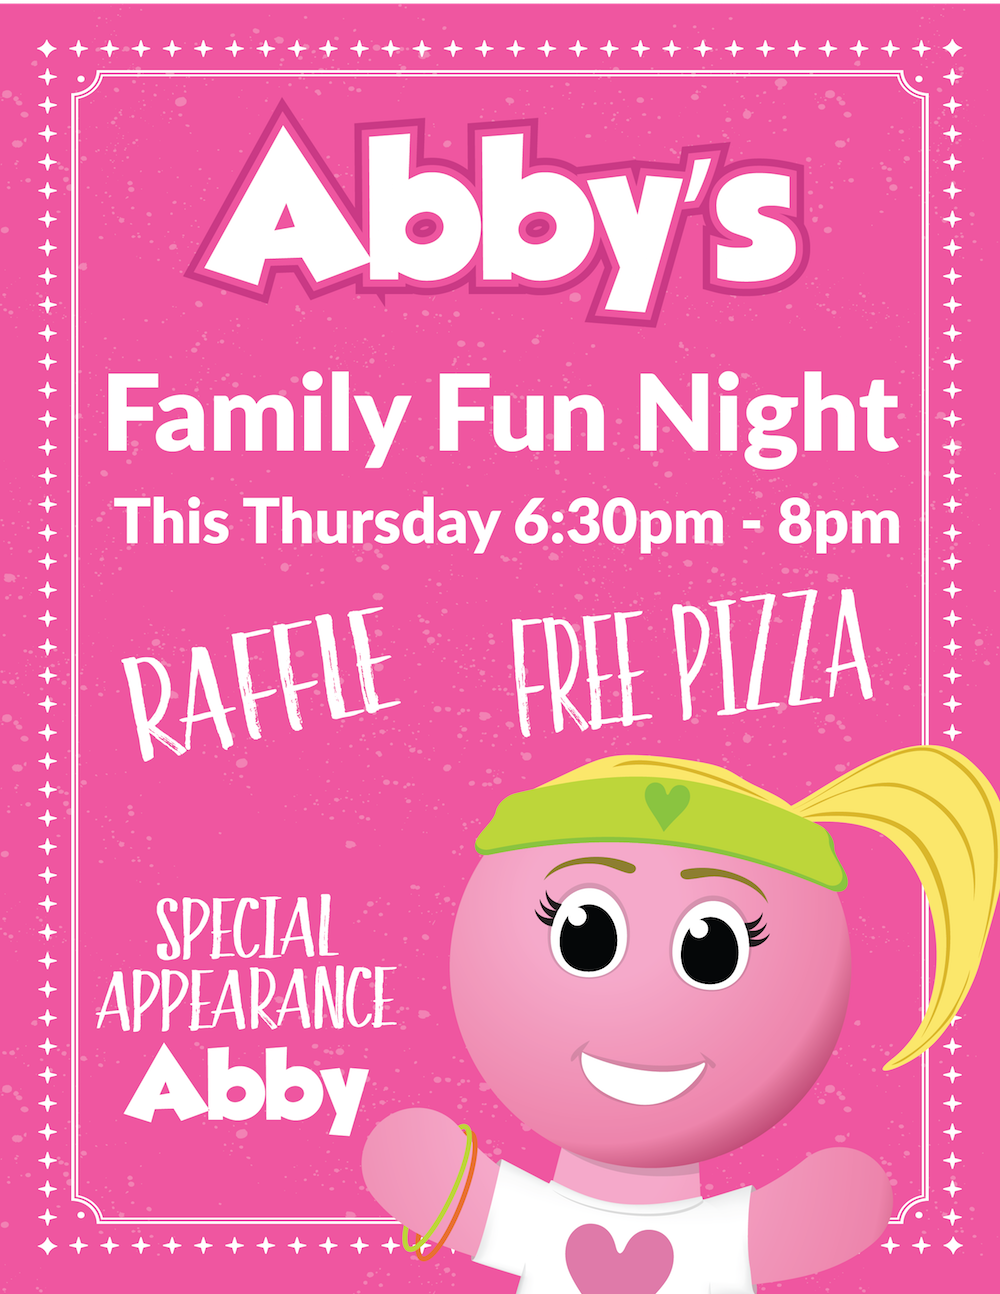 Abby's Family Fun Night